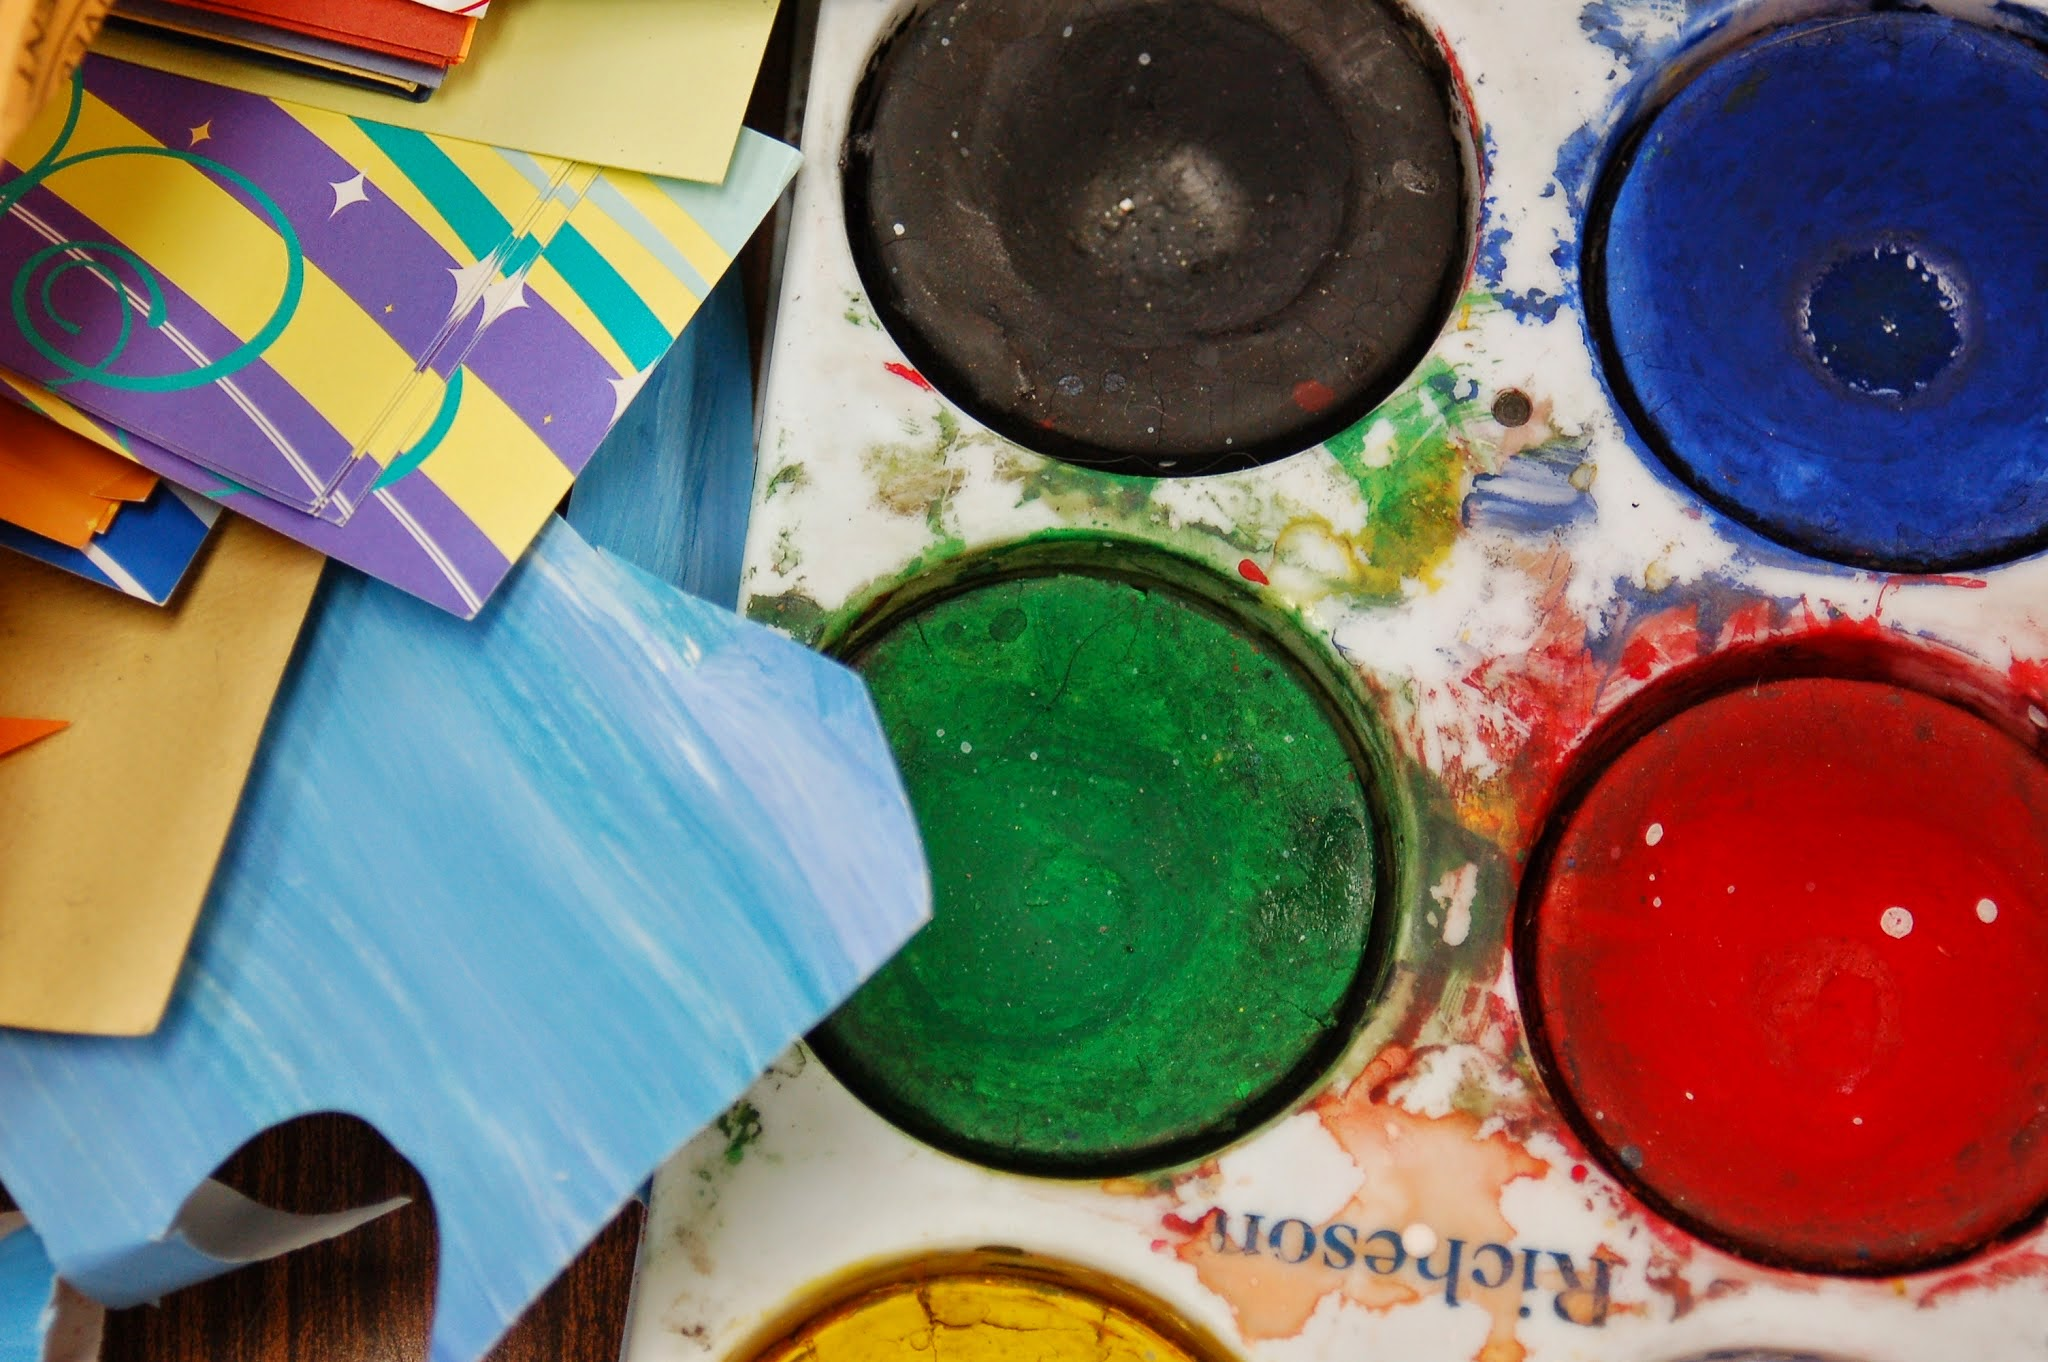 Photo Courtesy of Institute for Therapy through the Arts